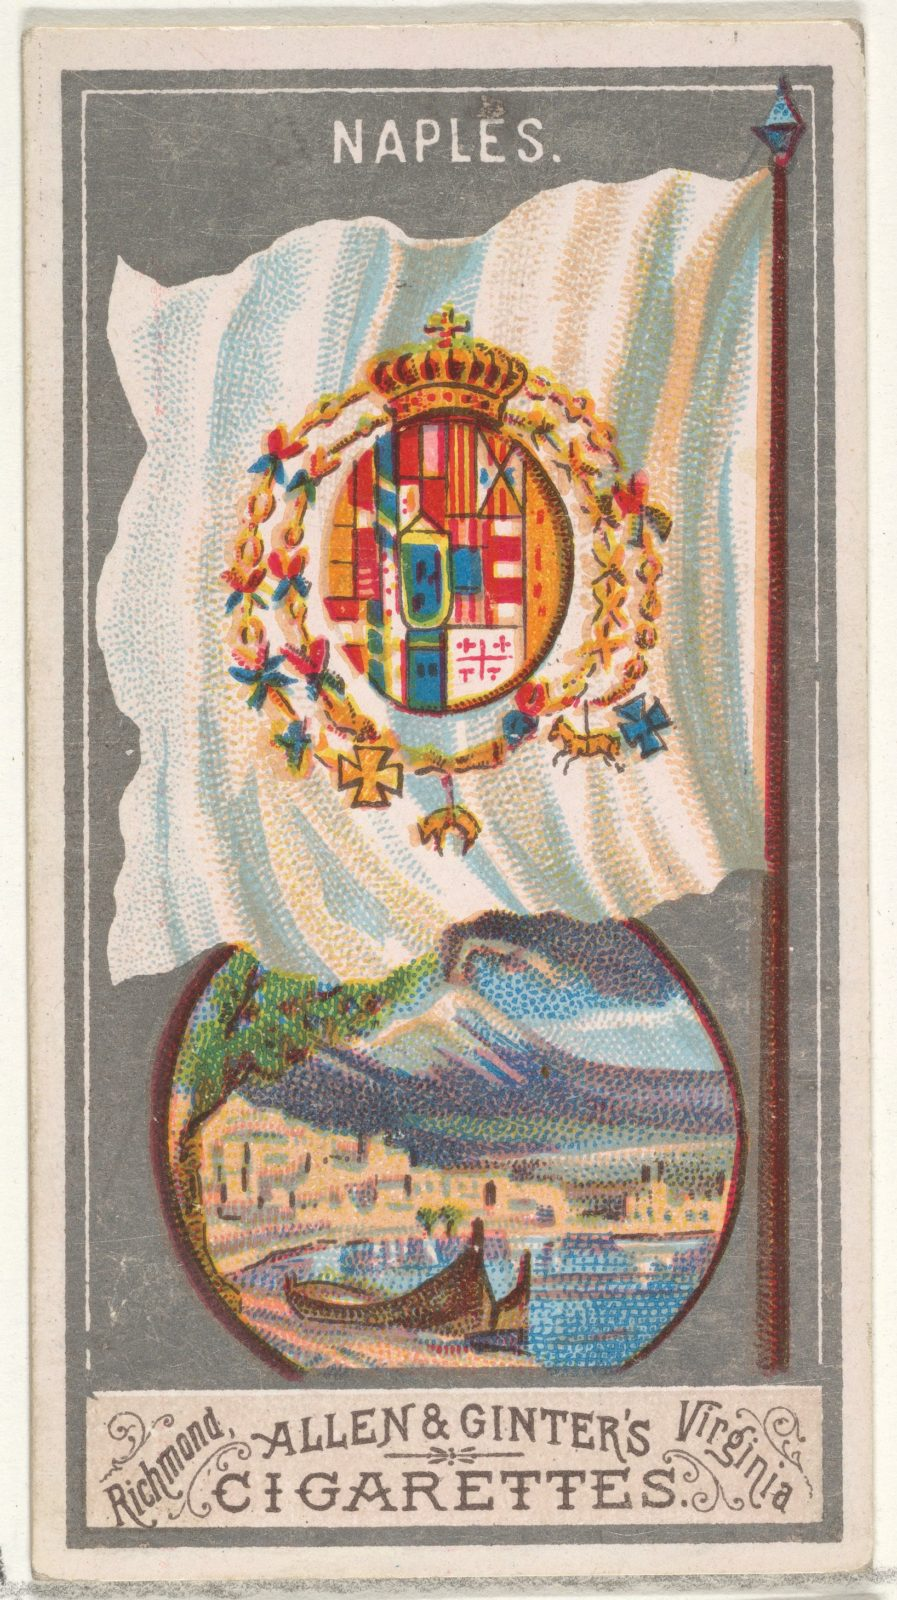 Naples, from the City Flags series (N6) for Allen & Ginter Cigarettes Brands